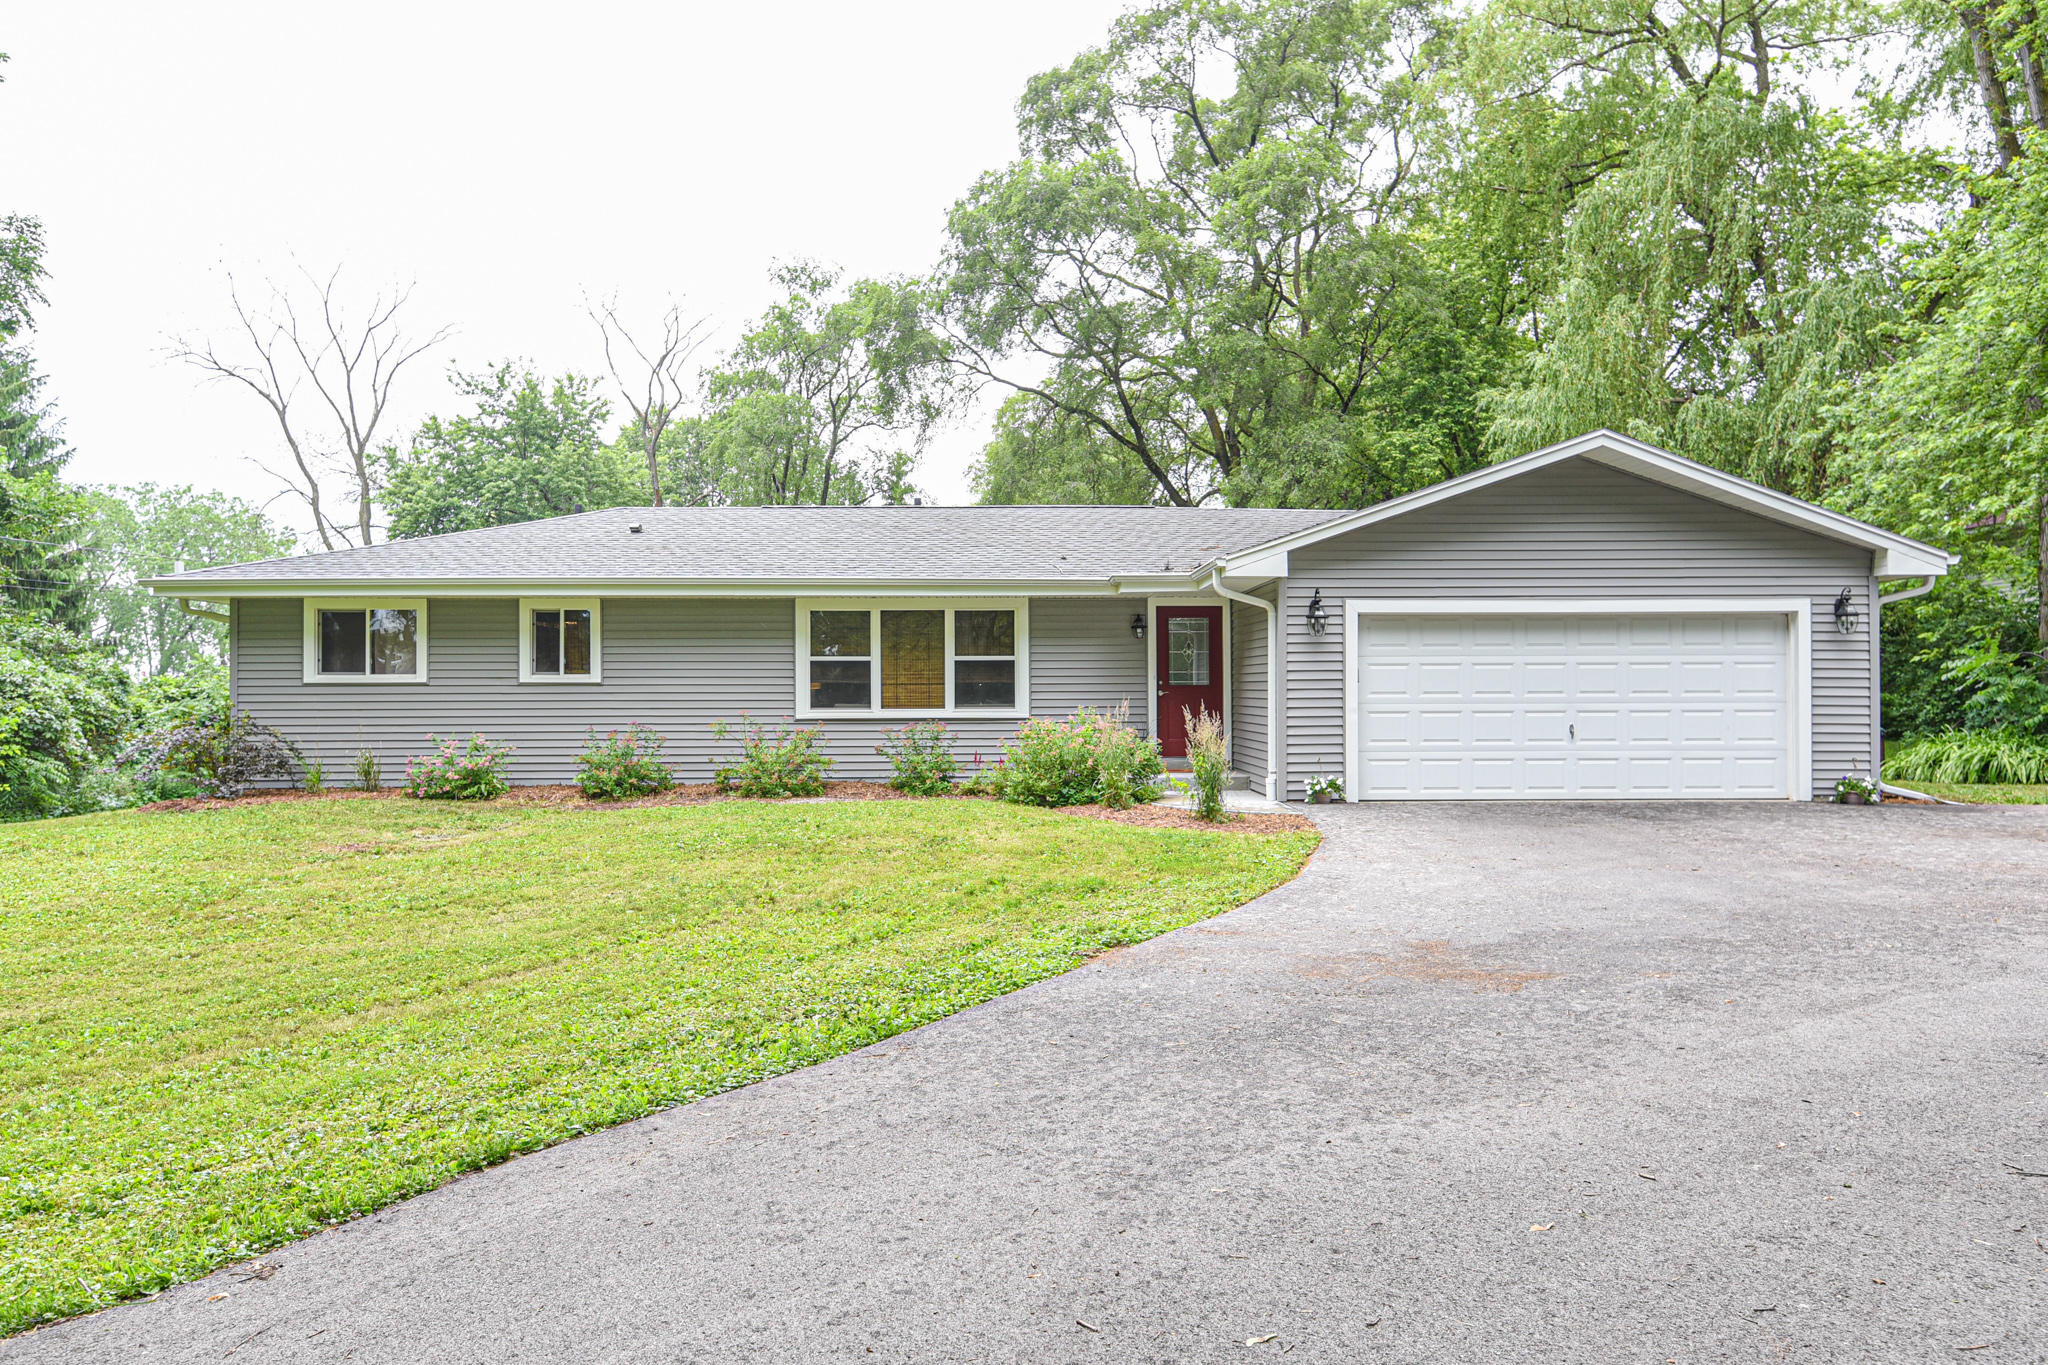 W261N4367 High St, Pewaukee, Wisconsin 53072, 3 Bedrooms Bedrooms, 7 Rooms Rooms,2 BathroomsBathrooms,Single-Family,For Sale,High St,1700407